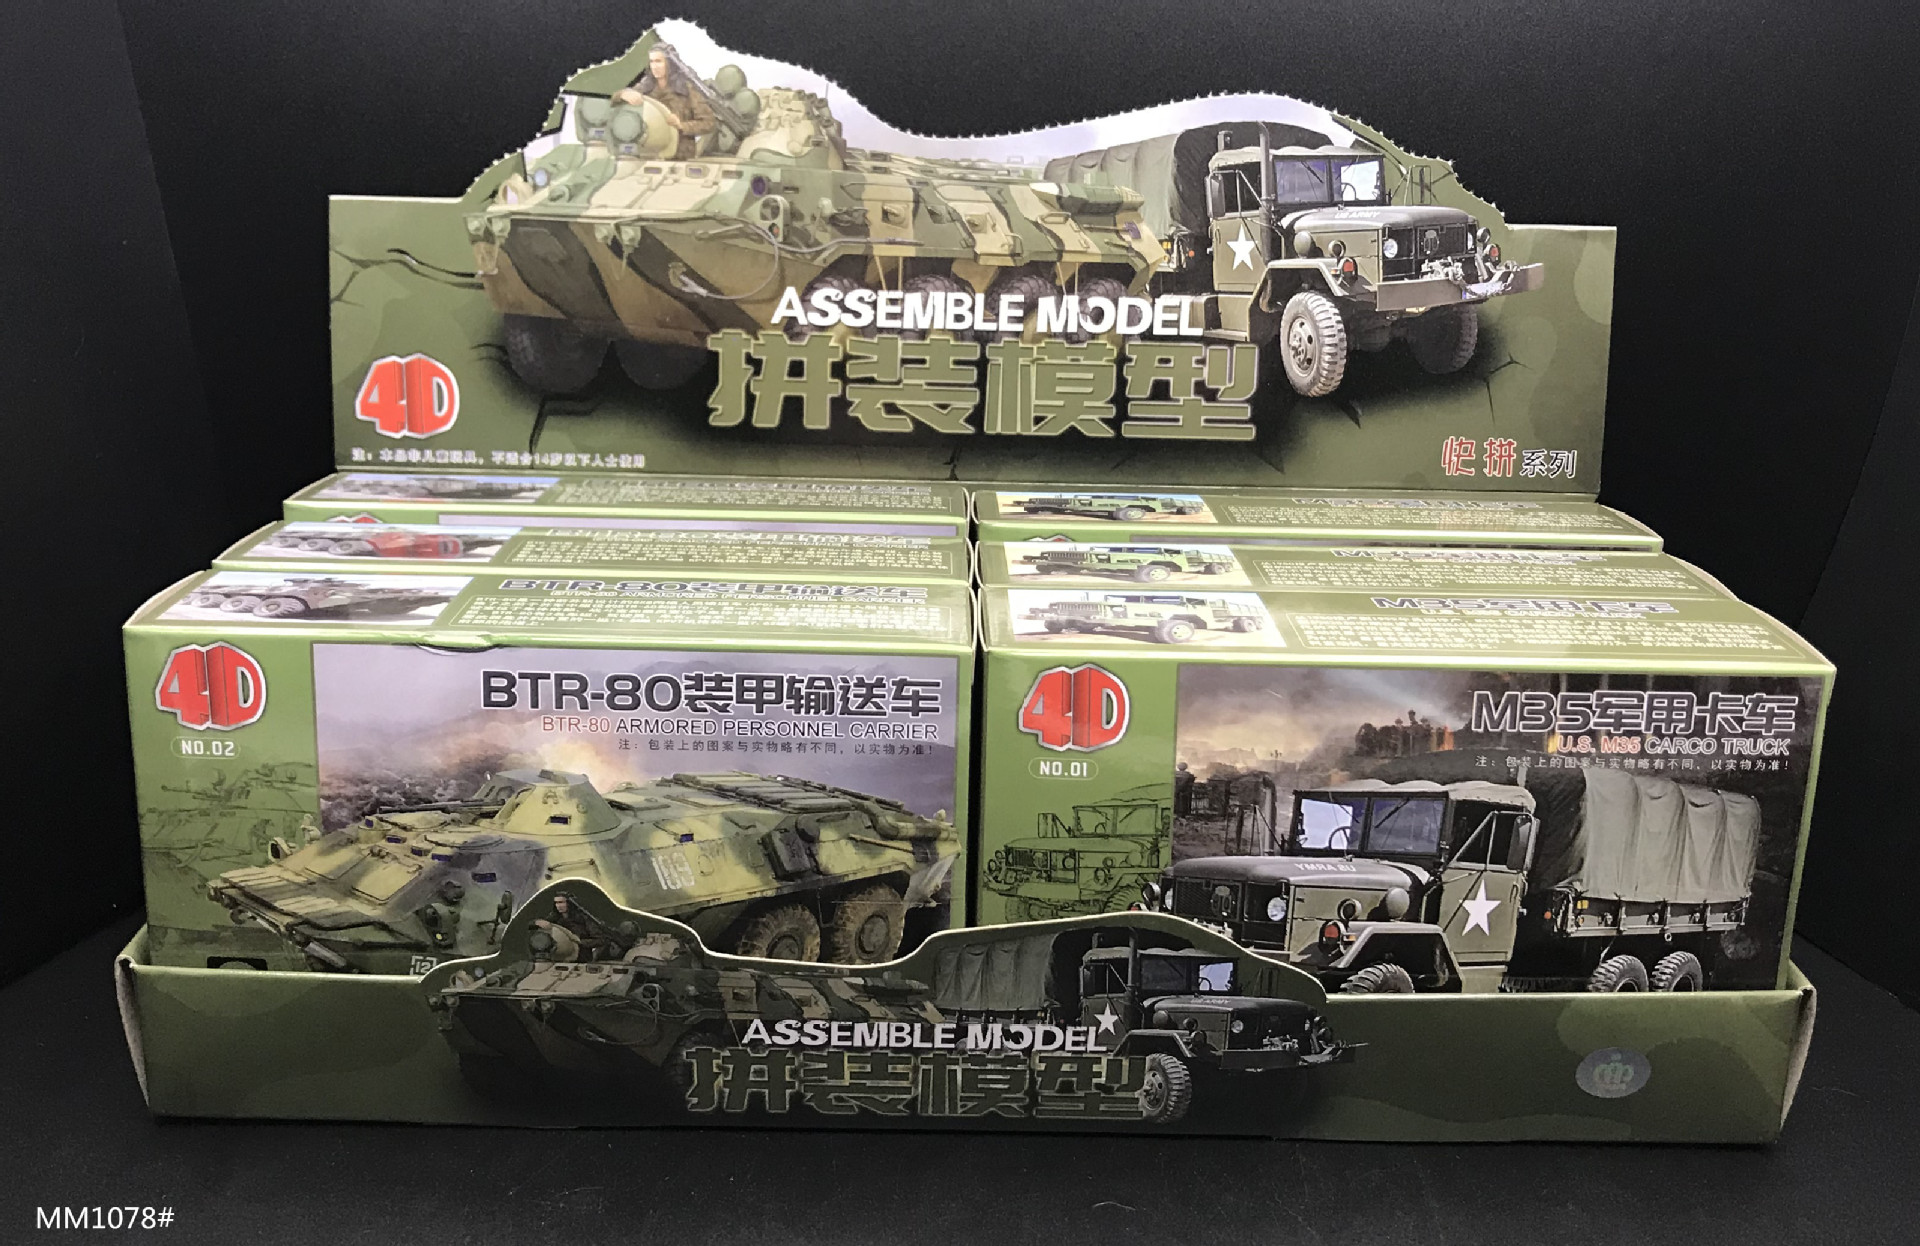 1:72 Military Vehicle M35 Truck Btr80 Armored Vehicle 1/72 Model DIY Puzzle Assembly Toy1:72 Military Vehicle M35 Truck Btr80 Armored Vehicle 1/72 Model DIY Puzzle Assembly Toy